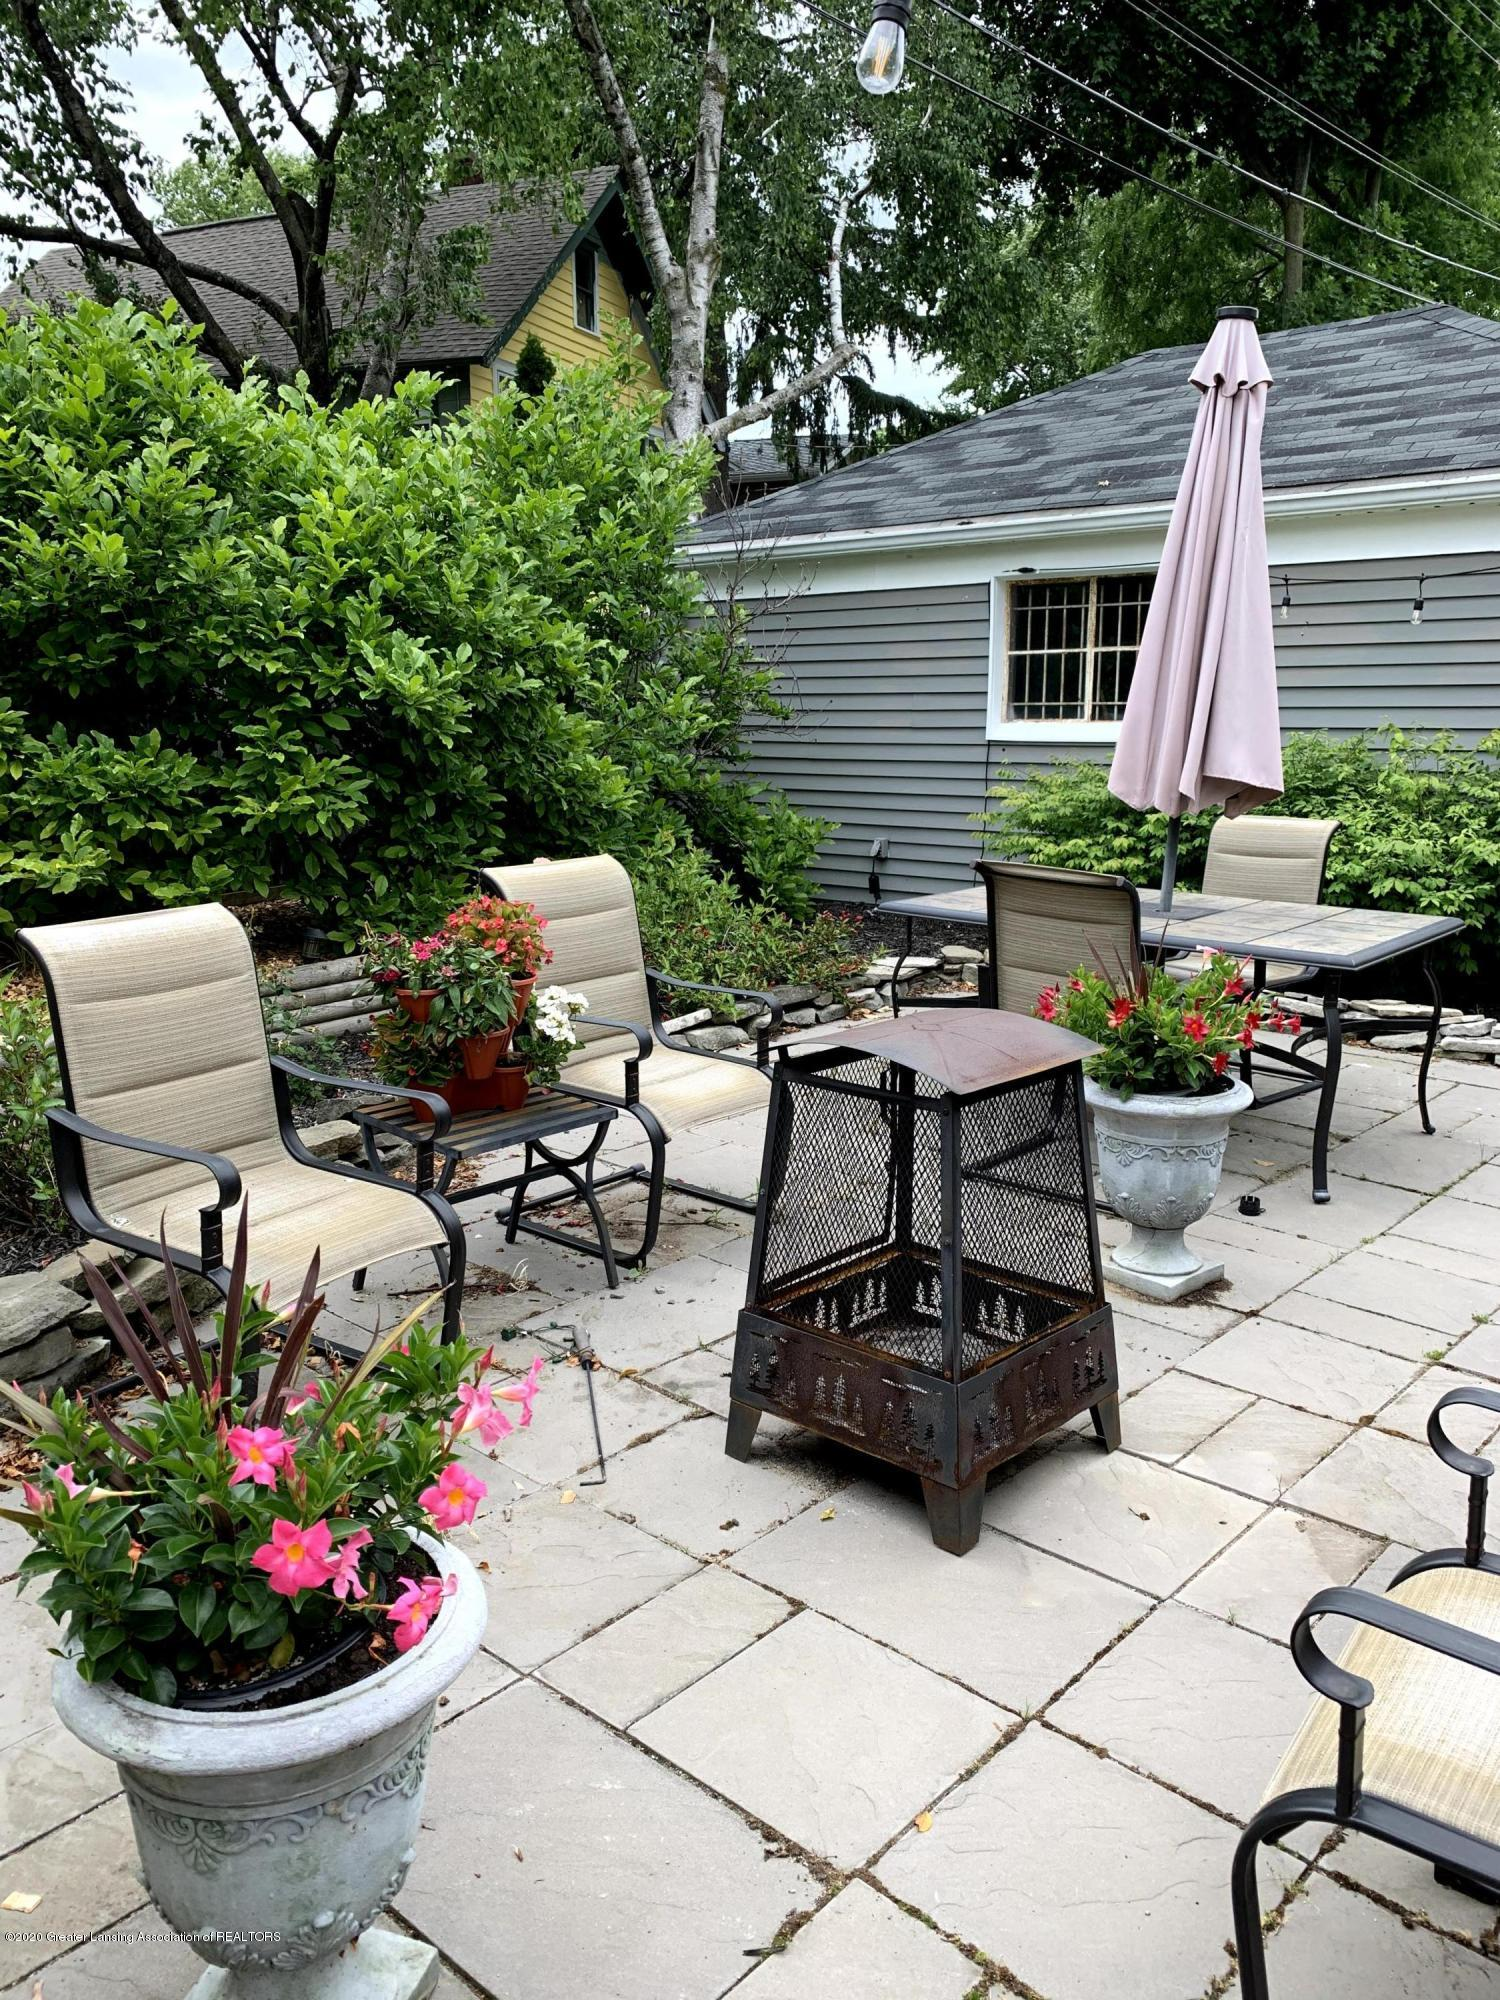 523 N Jenison Ave - Patio - 32